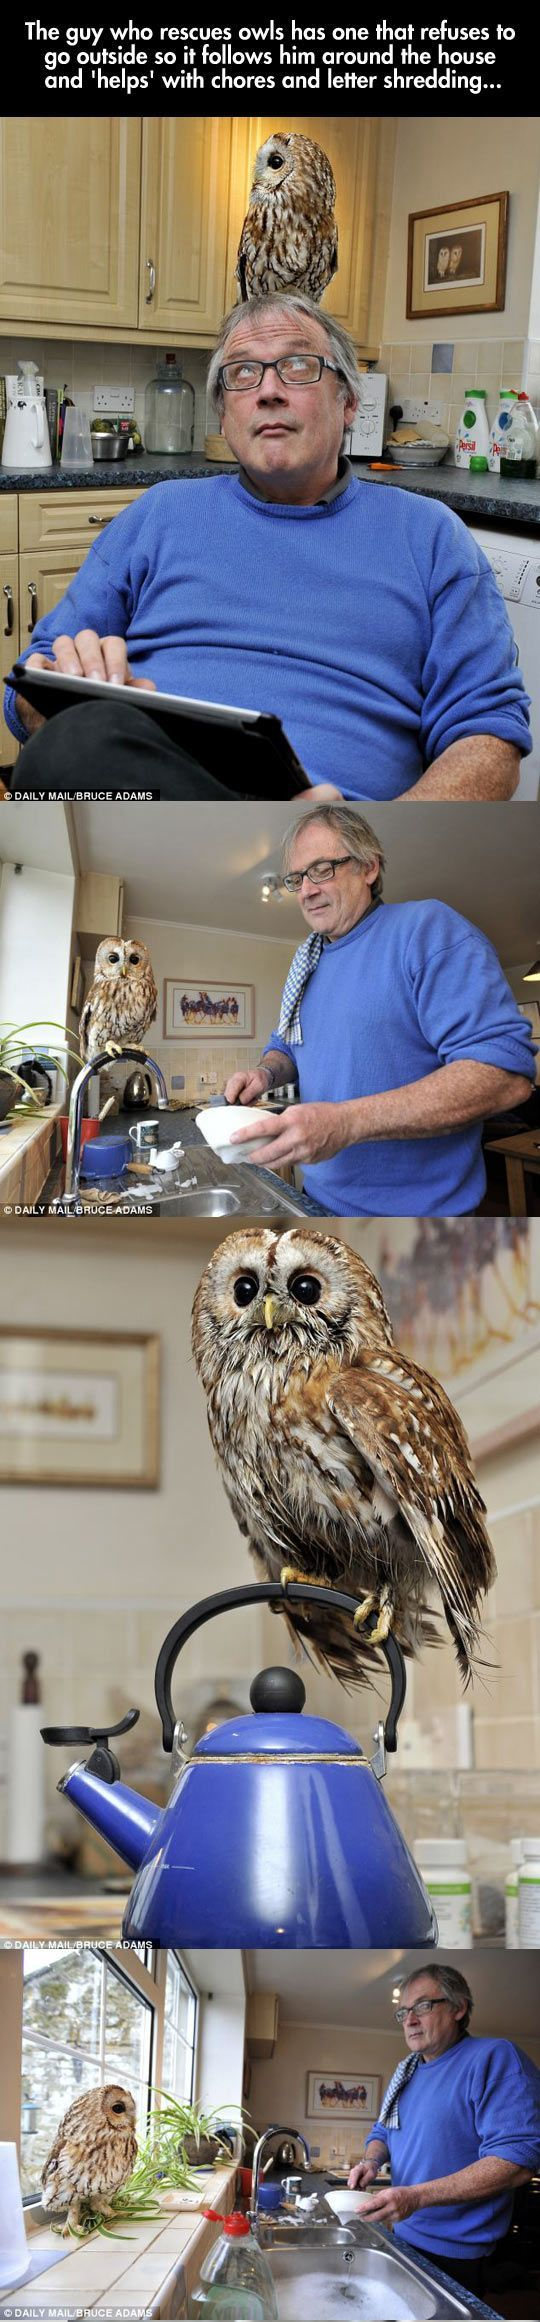 The owl and the man seem pretty cool.